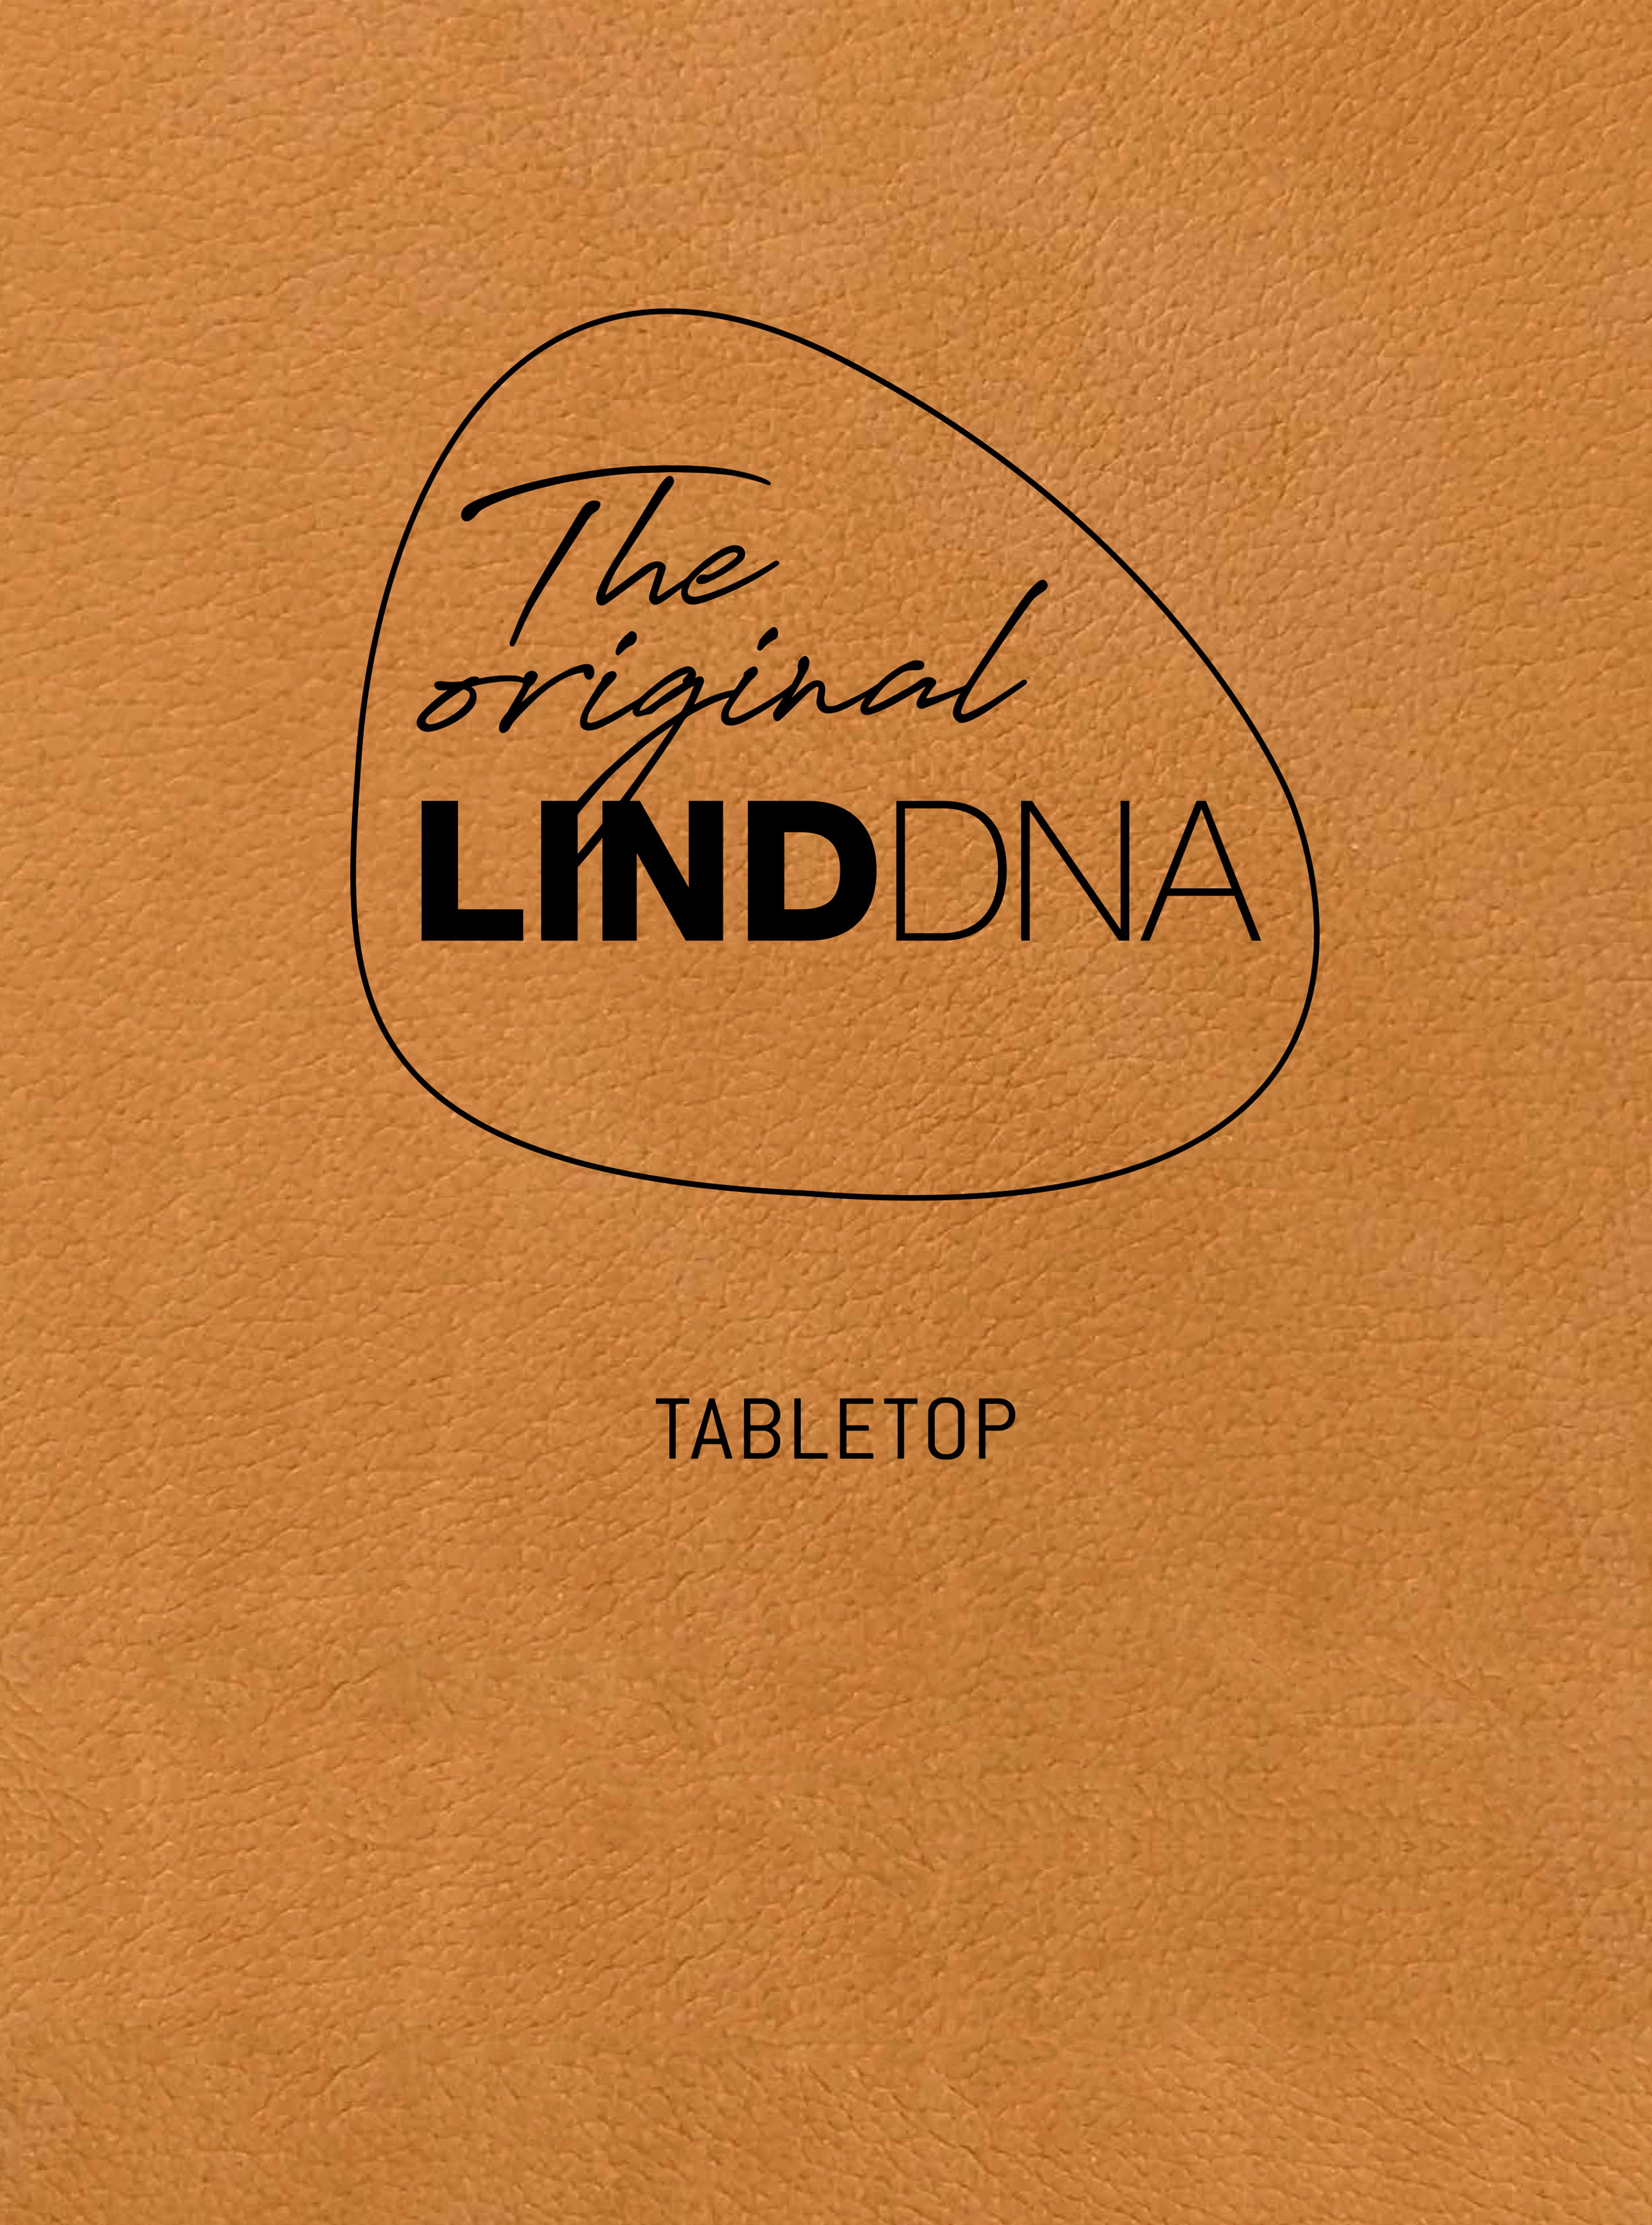 LindDNA Table Top Brochure 2019/2020